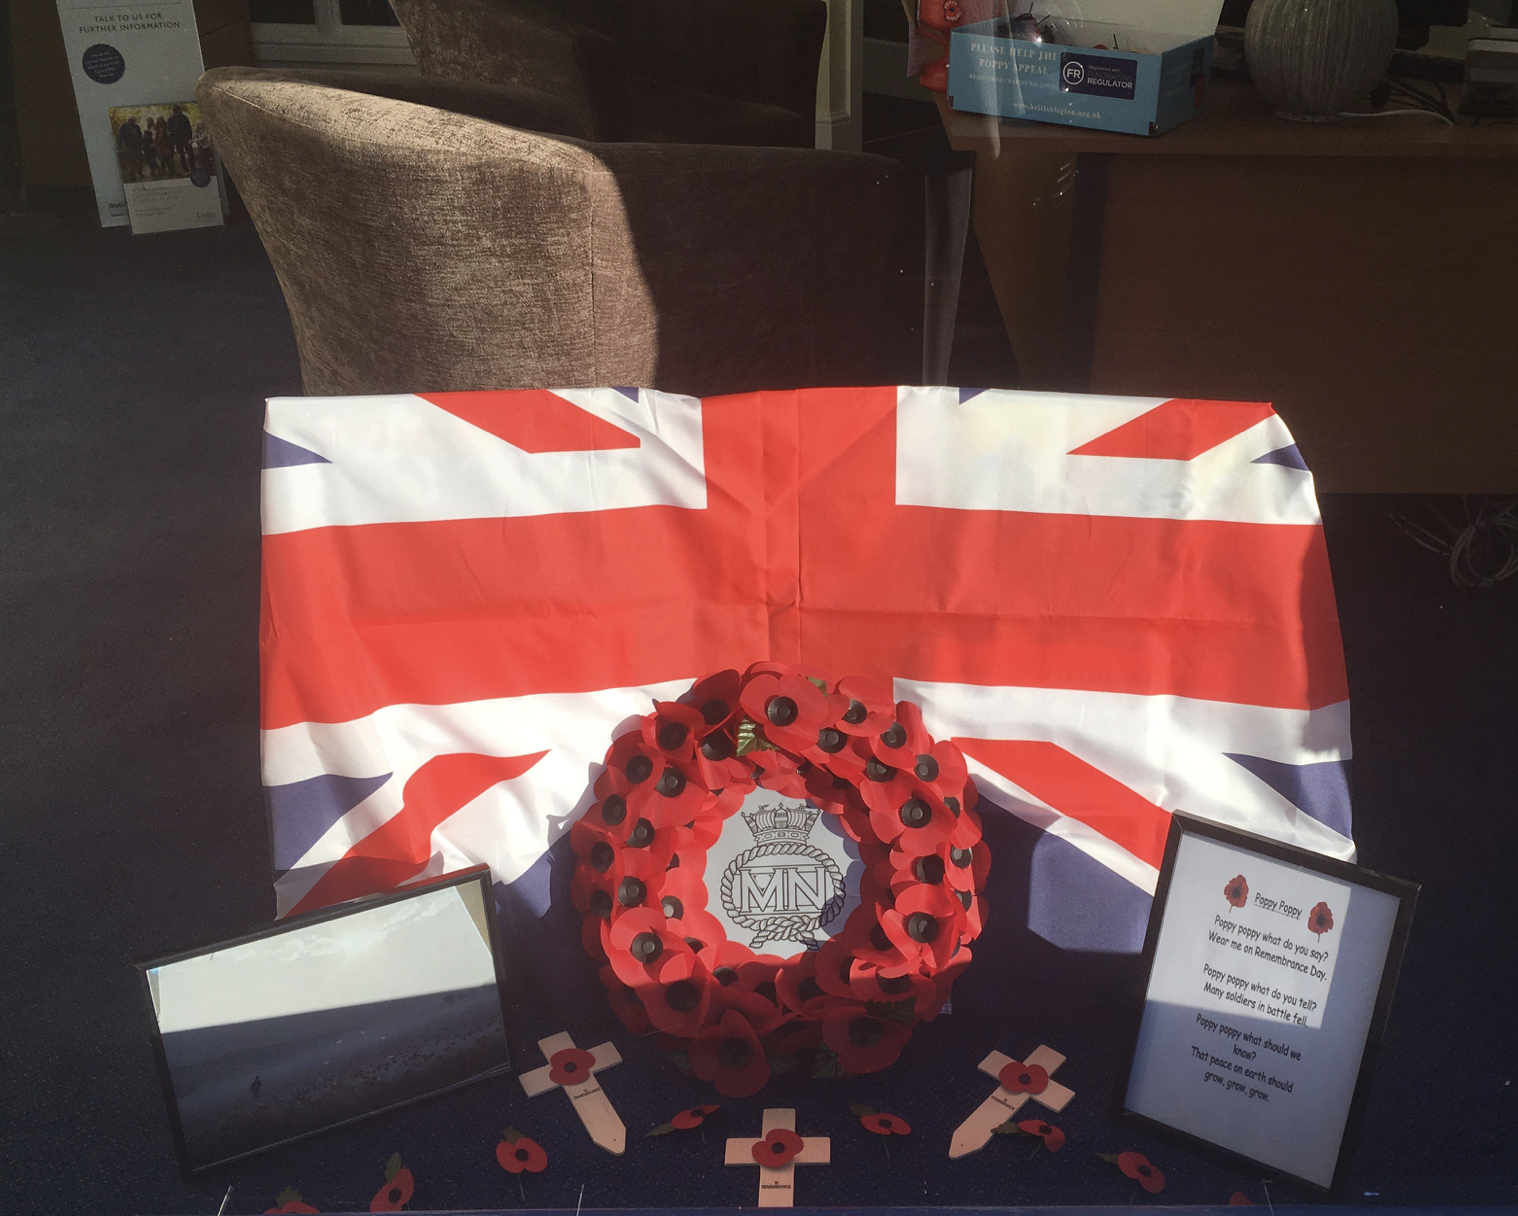 Lodge Brothers, Ascot says: 'Lest We Forget'